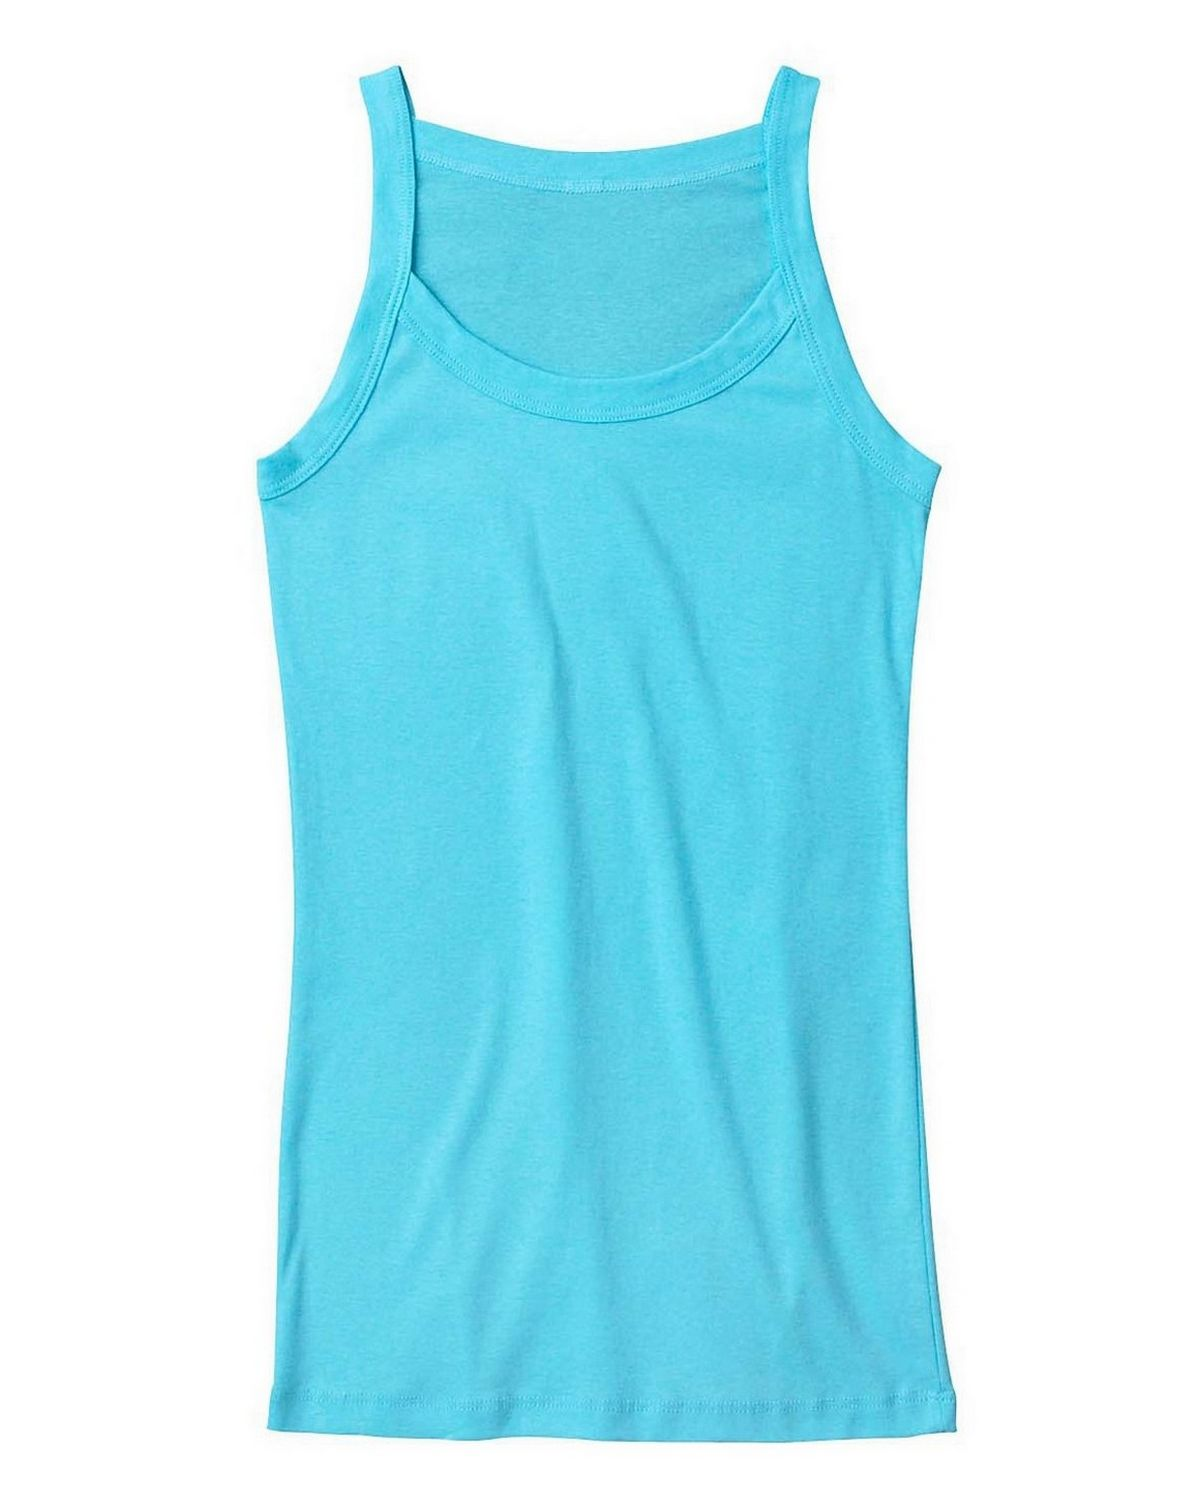 Bella + Canvas 8711 Ladies Catrina Sheer Rib Tank - Light Aqua - S 8711